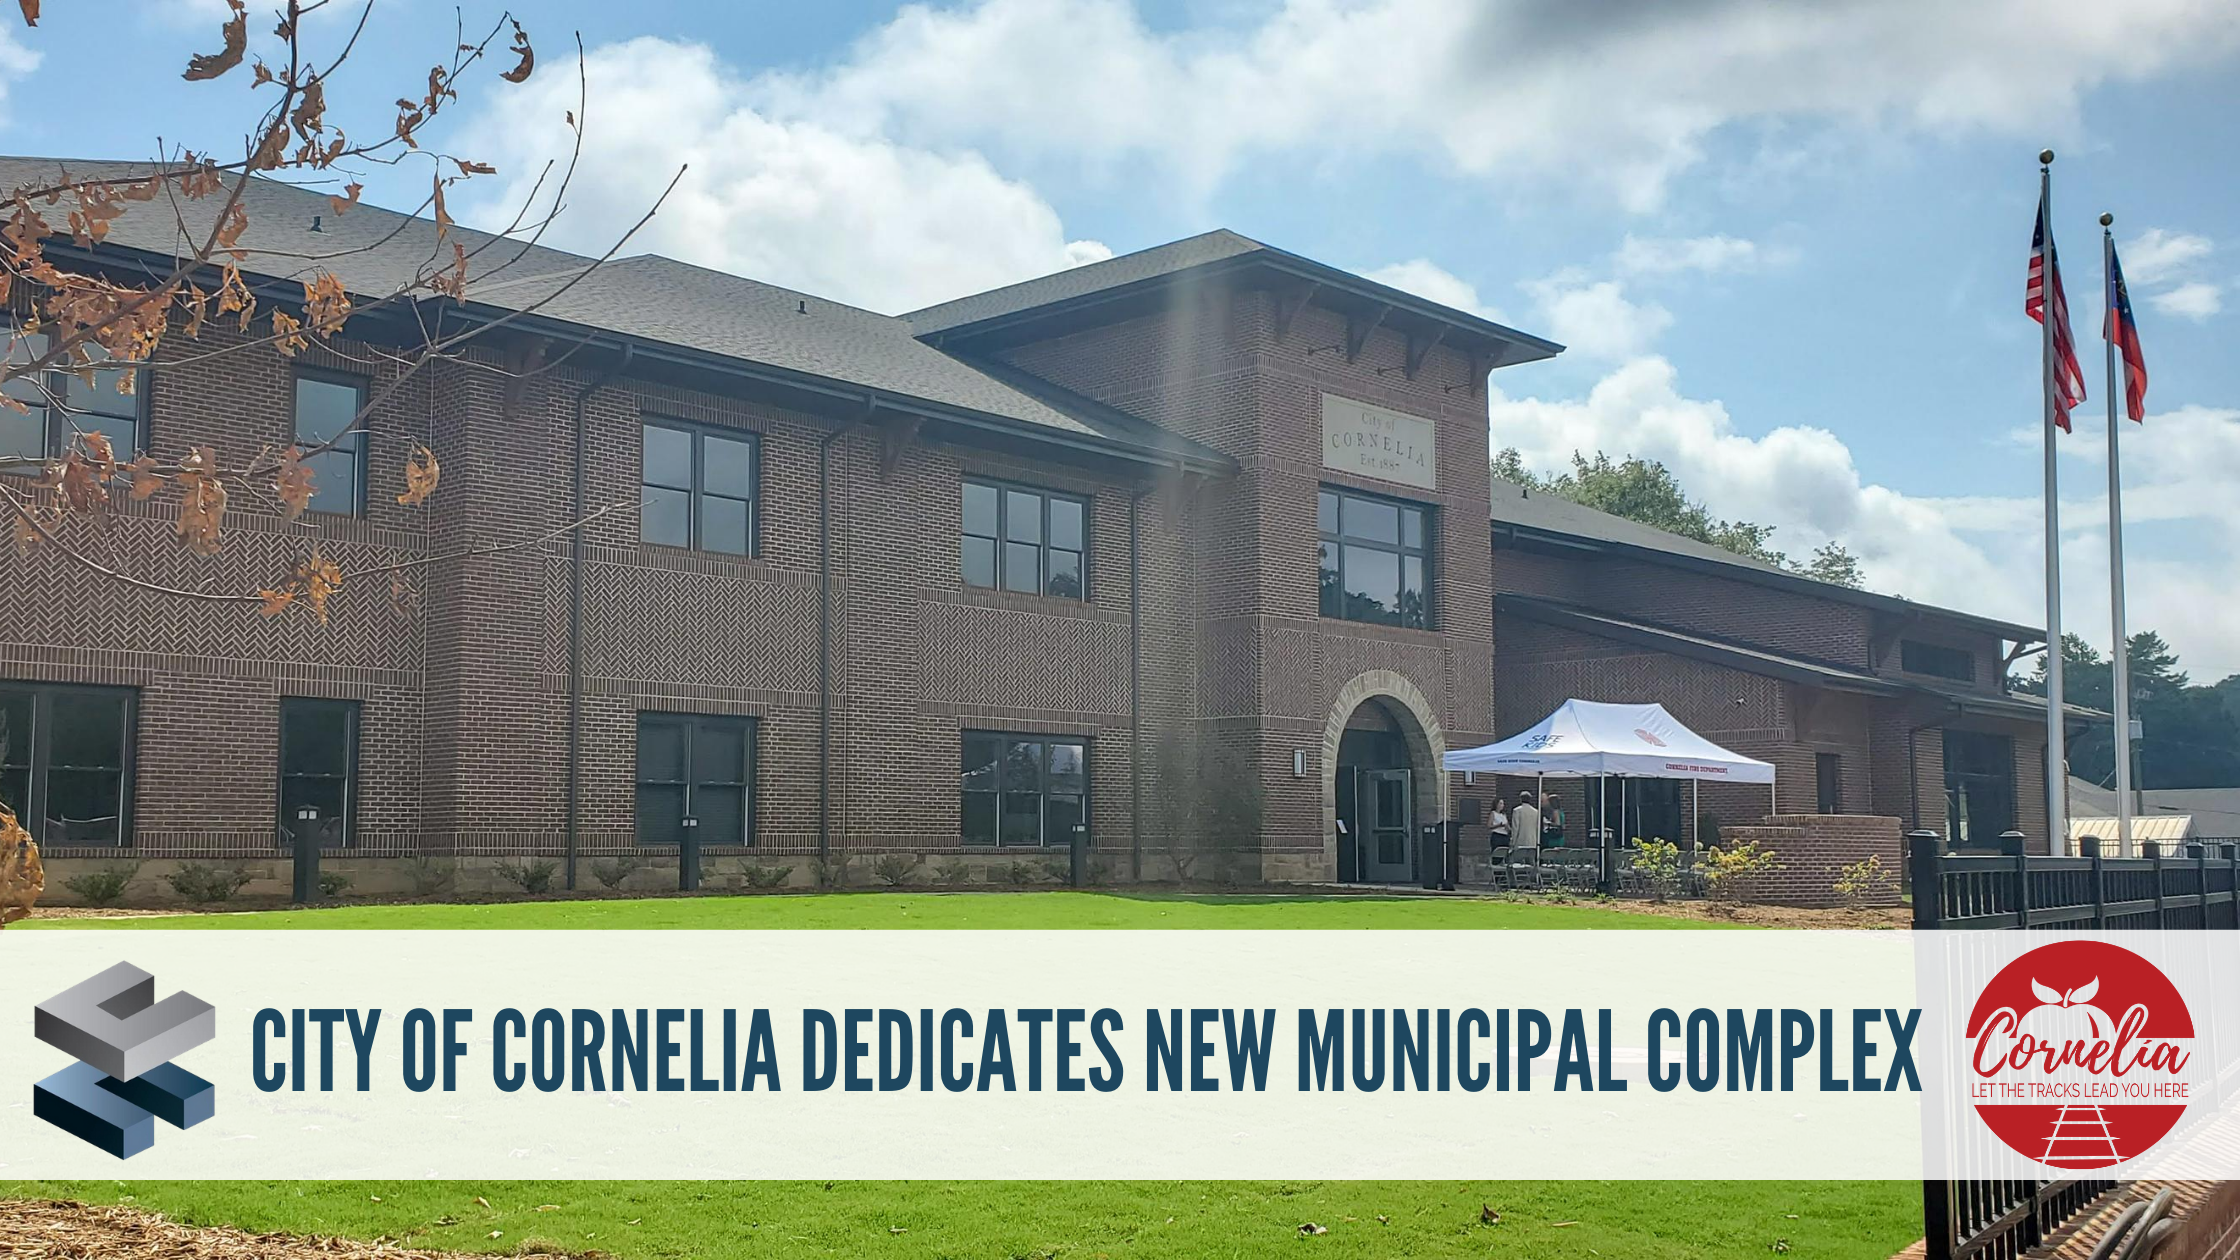 City of Cornelia Officials hold Municipal Complex Dedication and Open House